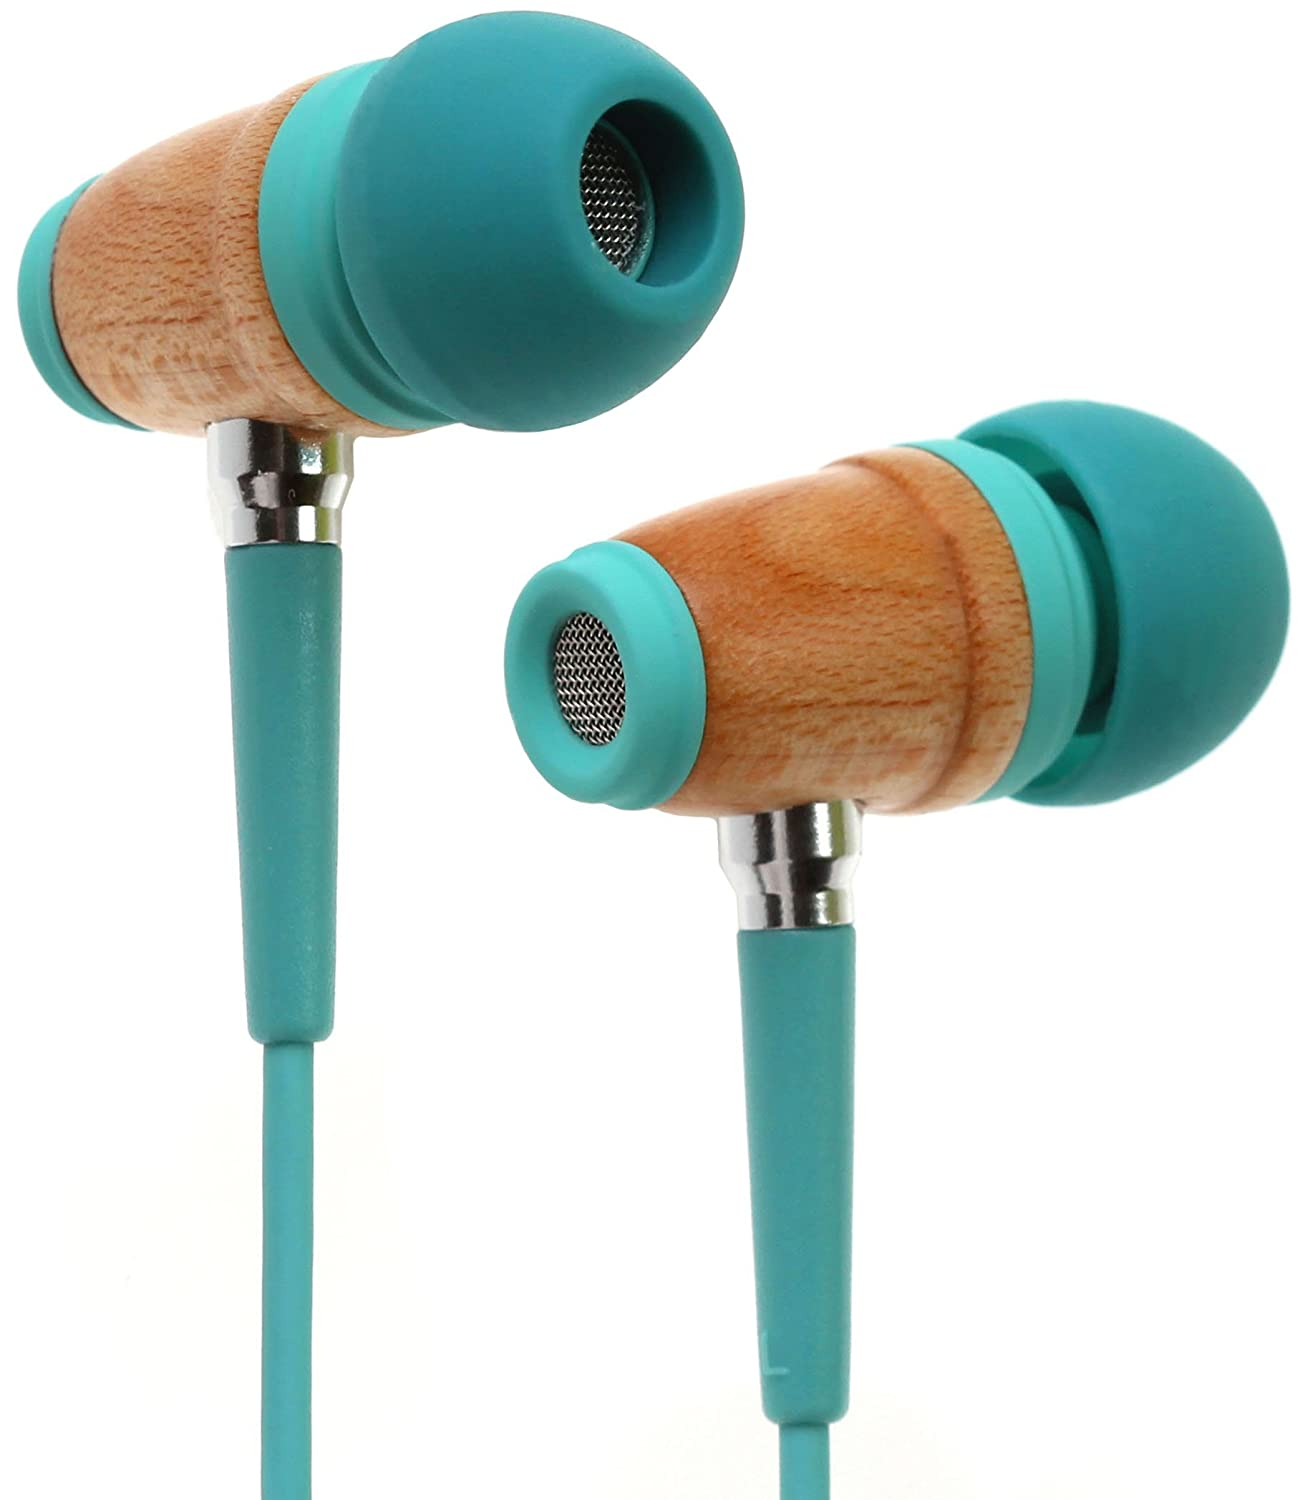 Symphonized Kids Volume Limited Premium Wood in-Ear Noise-isolating Headphones, Earbuds, Earphones with Mic (Seafoam Green)